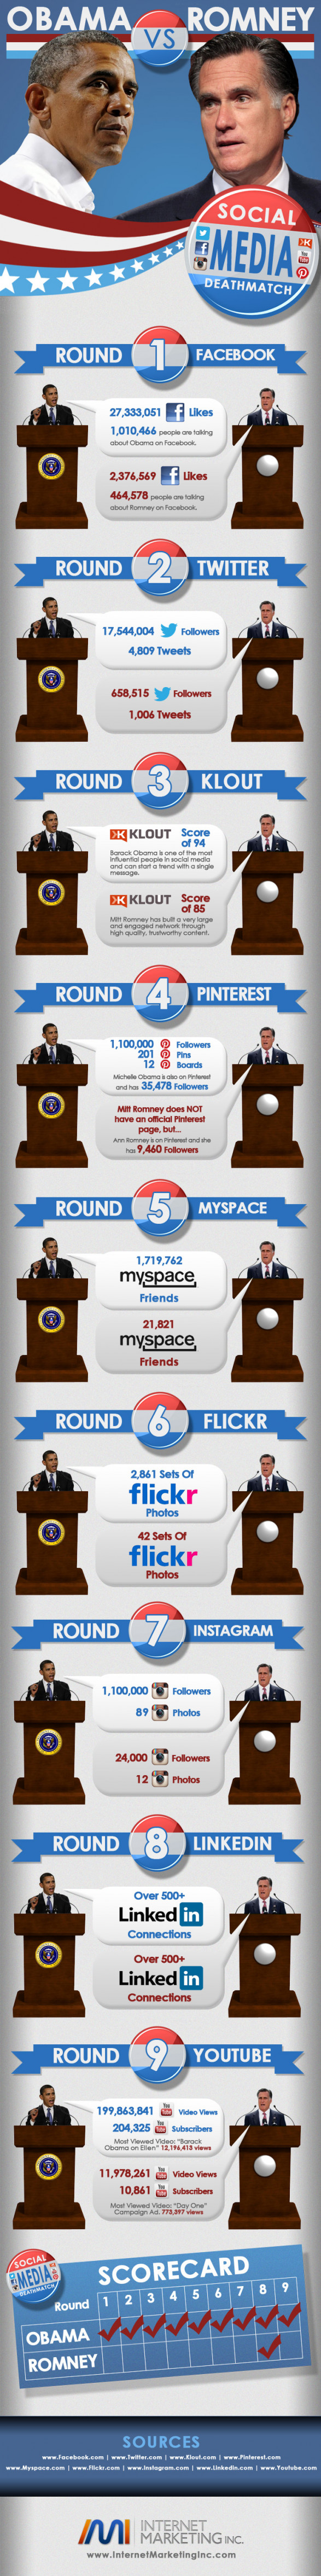 Social Media Showdown: Obama vs Romney